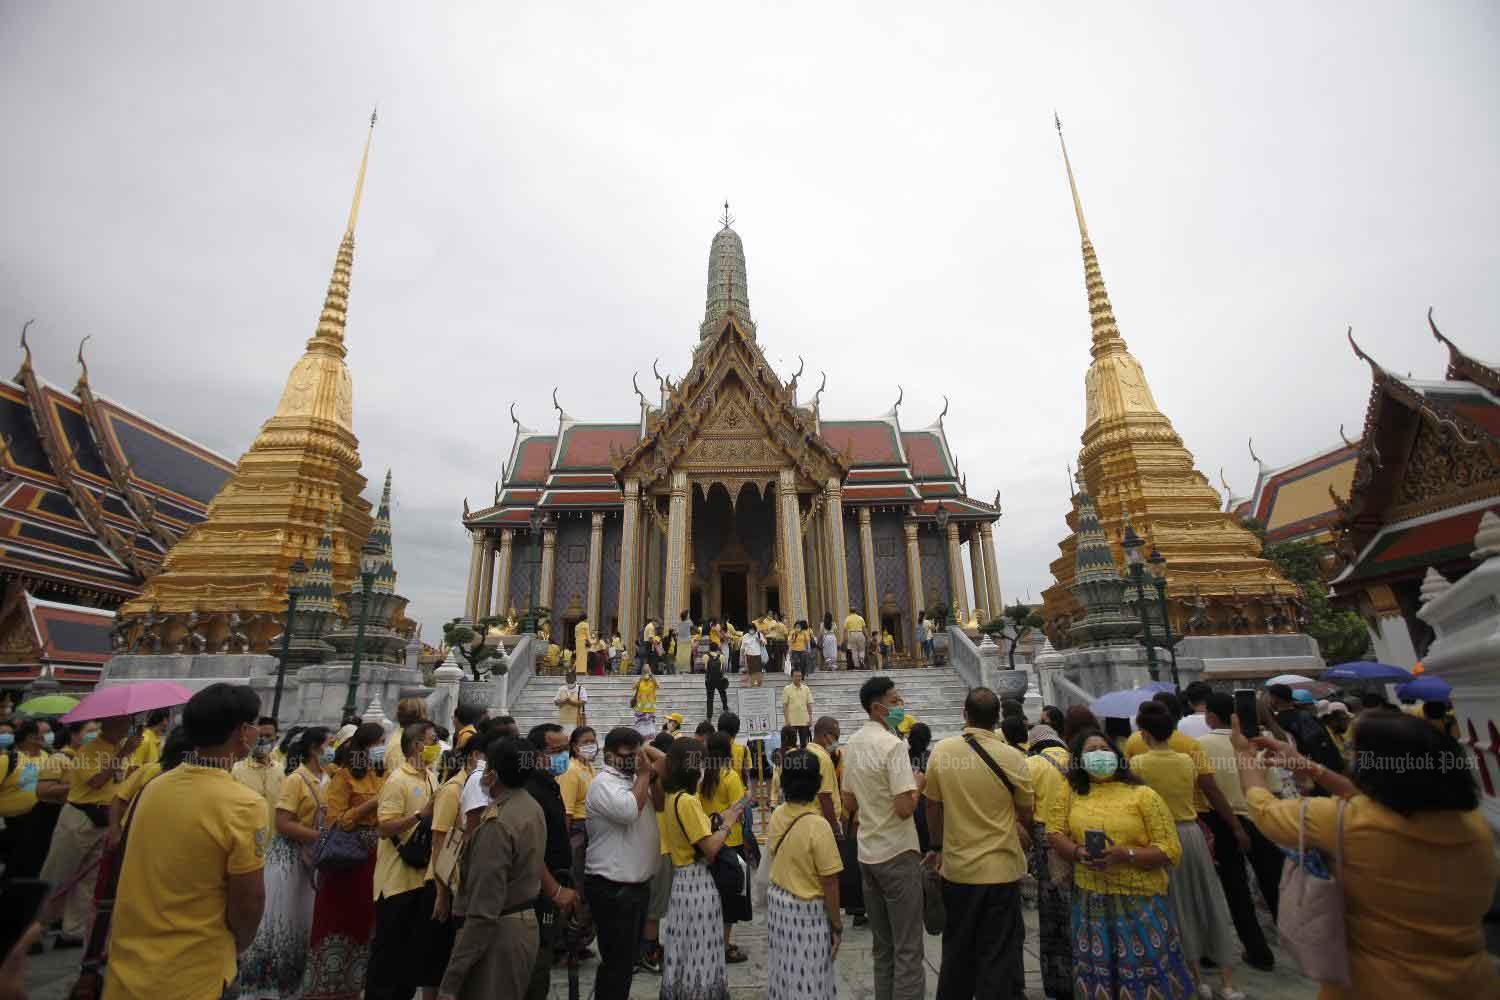 Yellow-clad people line up on Tuesday to pay homage before the statues of the nine late kings at Prasat Phra Thep Bidon (Royal Pantheon) inside Wat Phra Kaeo in Bangkok in commemoration of the passing of His Majesty King Bhumibol Adulyadej The Great. (Photo by Nutthawat Wicheanbut)